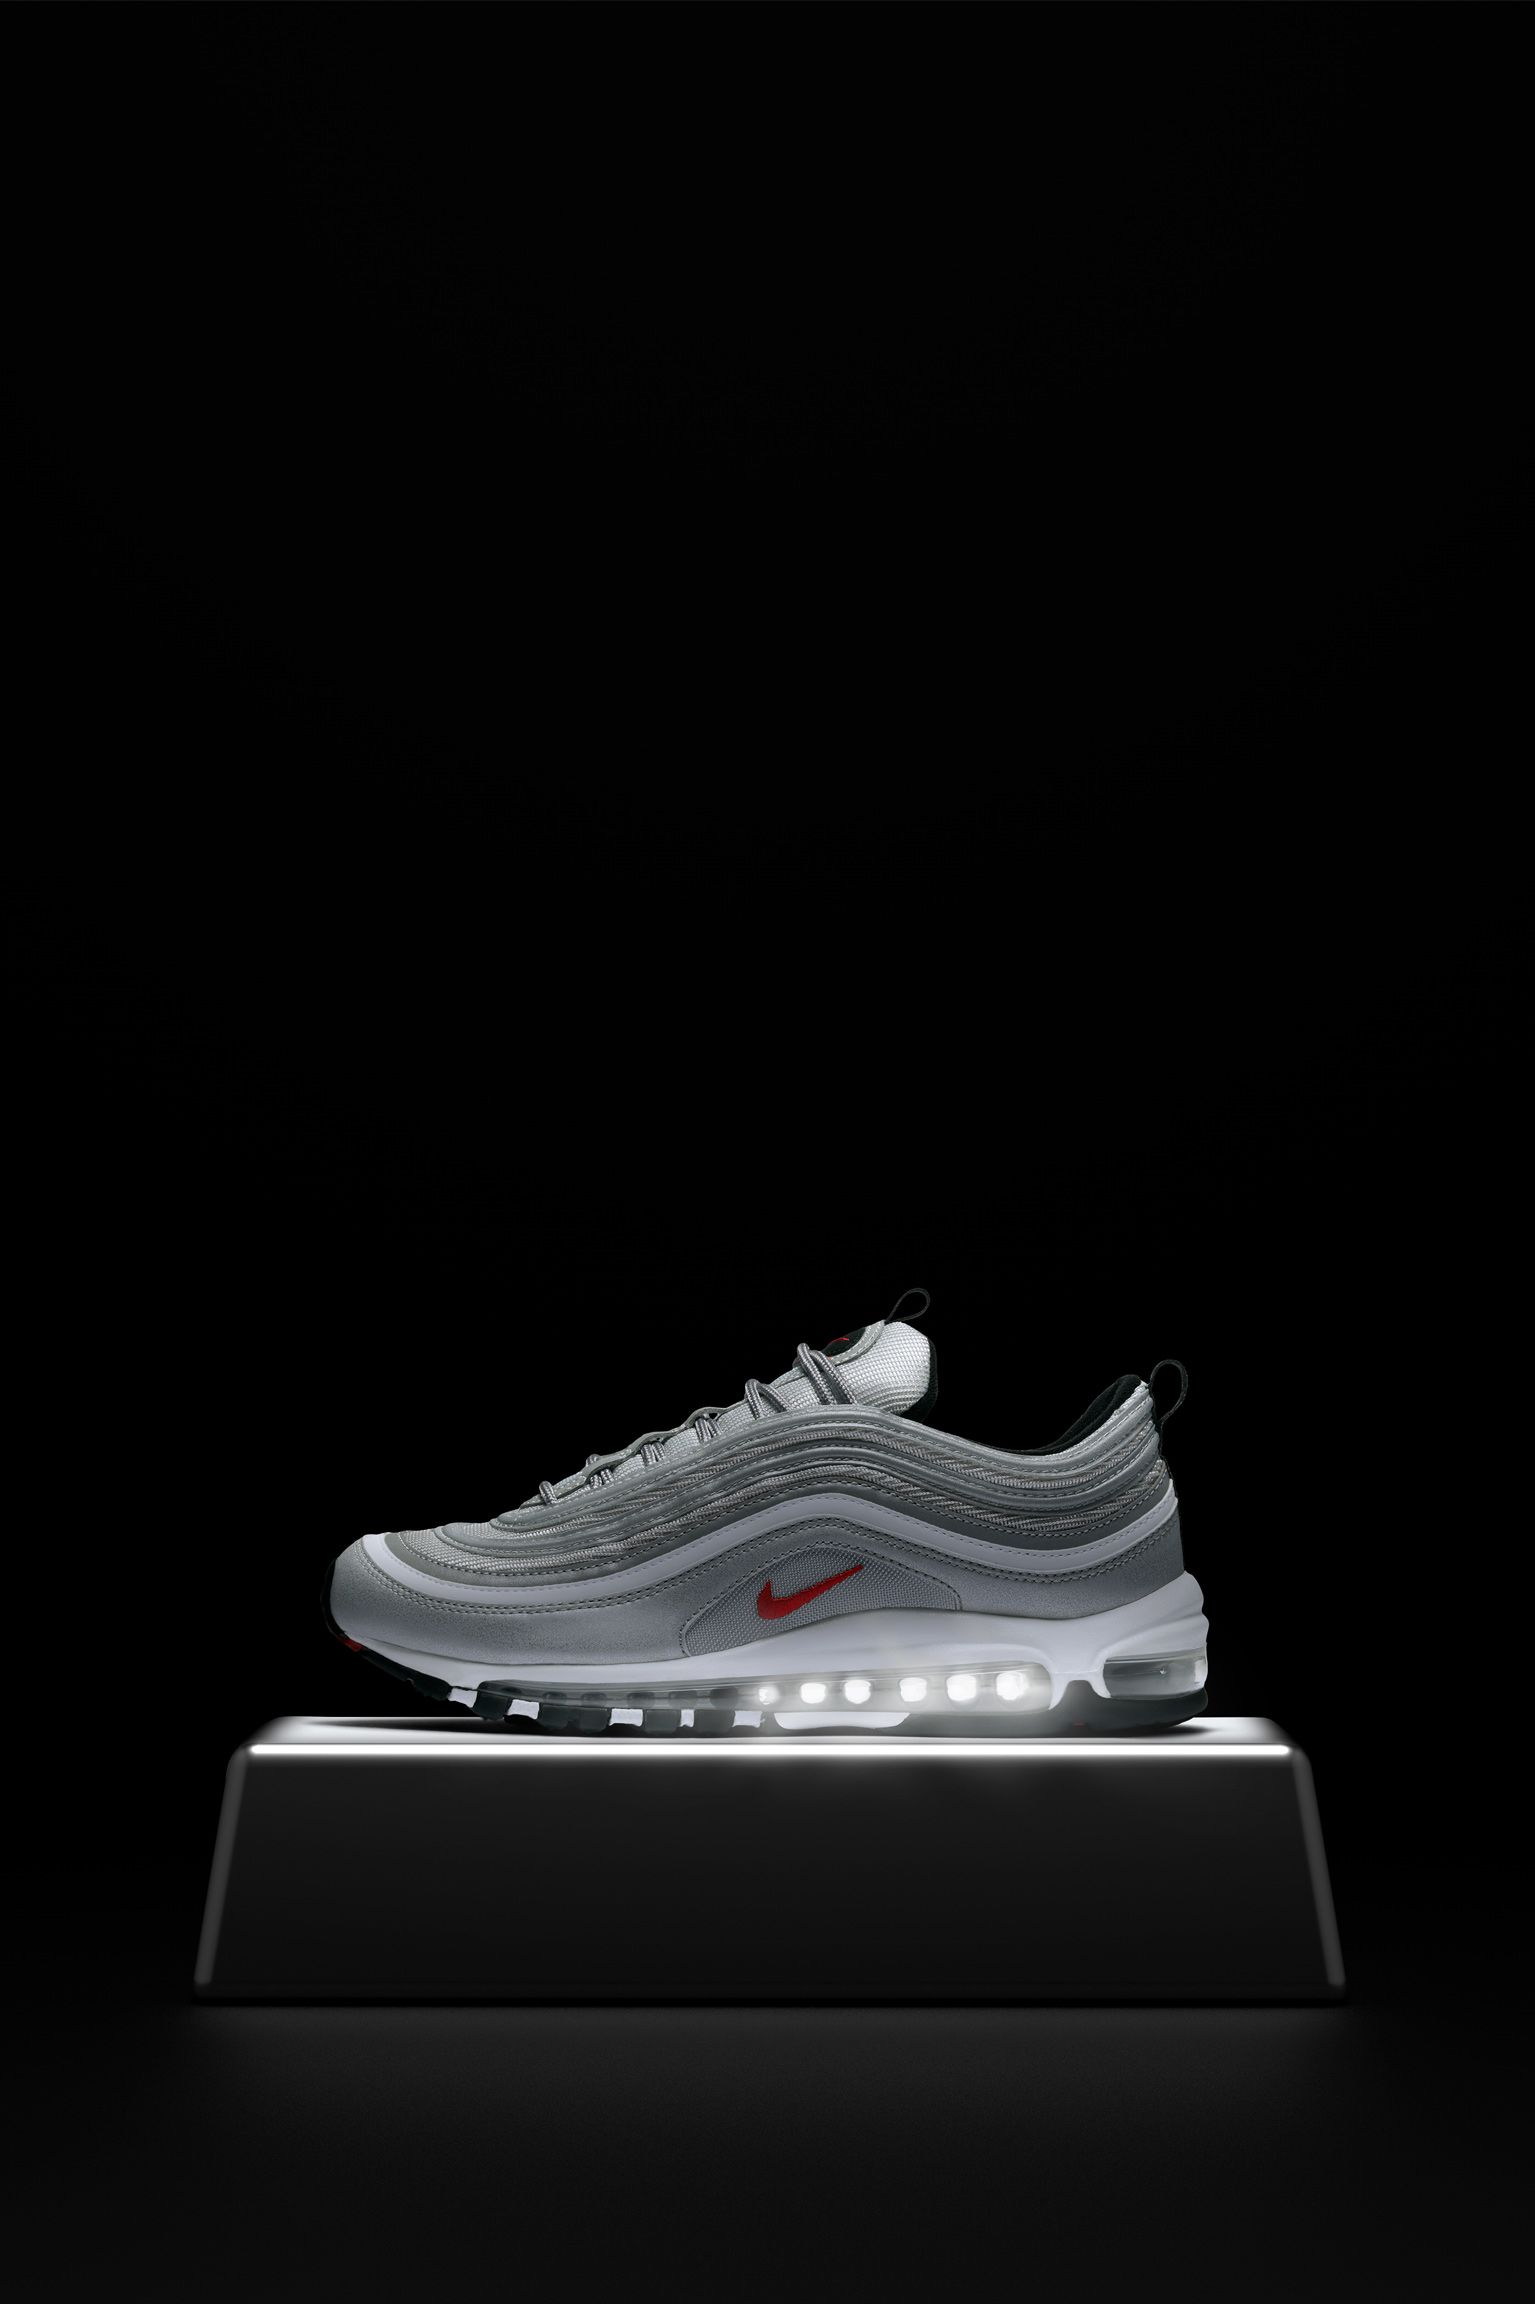 132d92e3fe8 ... the drop date 0dca5 d133f  official store nike air max 97 og metallic  silver. nikeu2060 snkrs 09e48 bdbfe